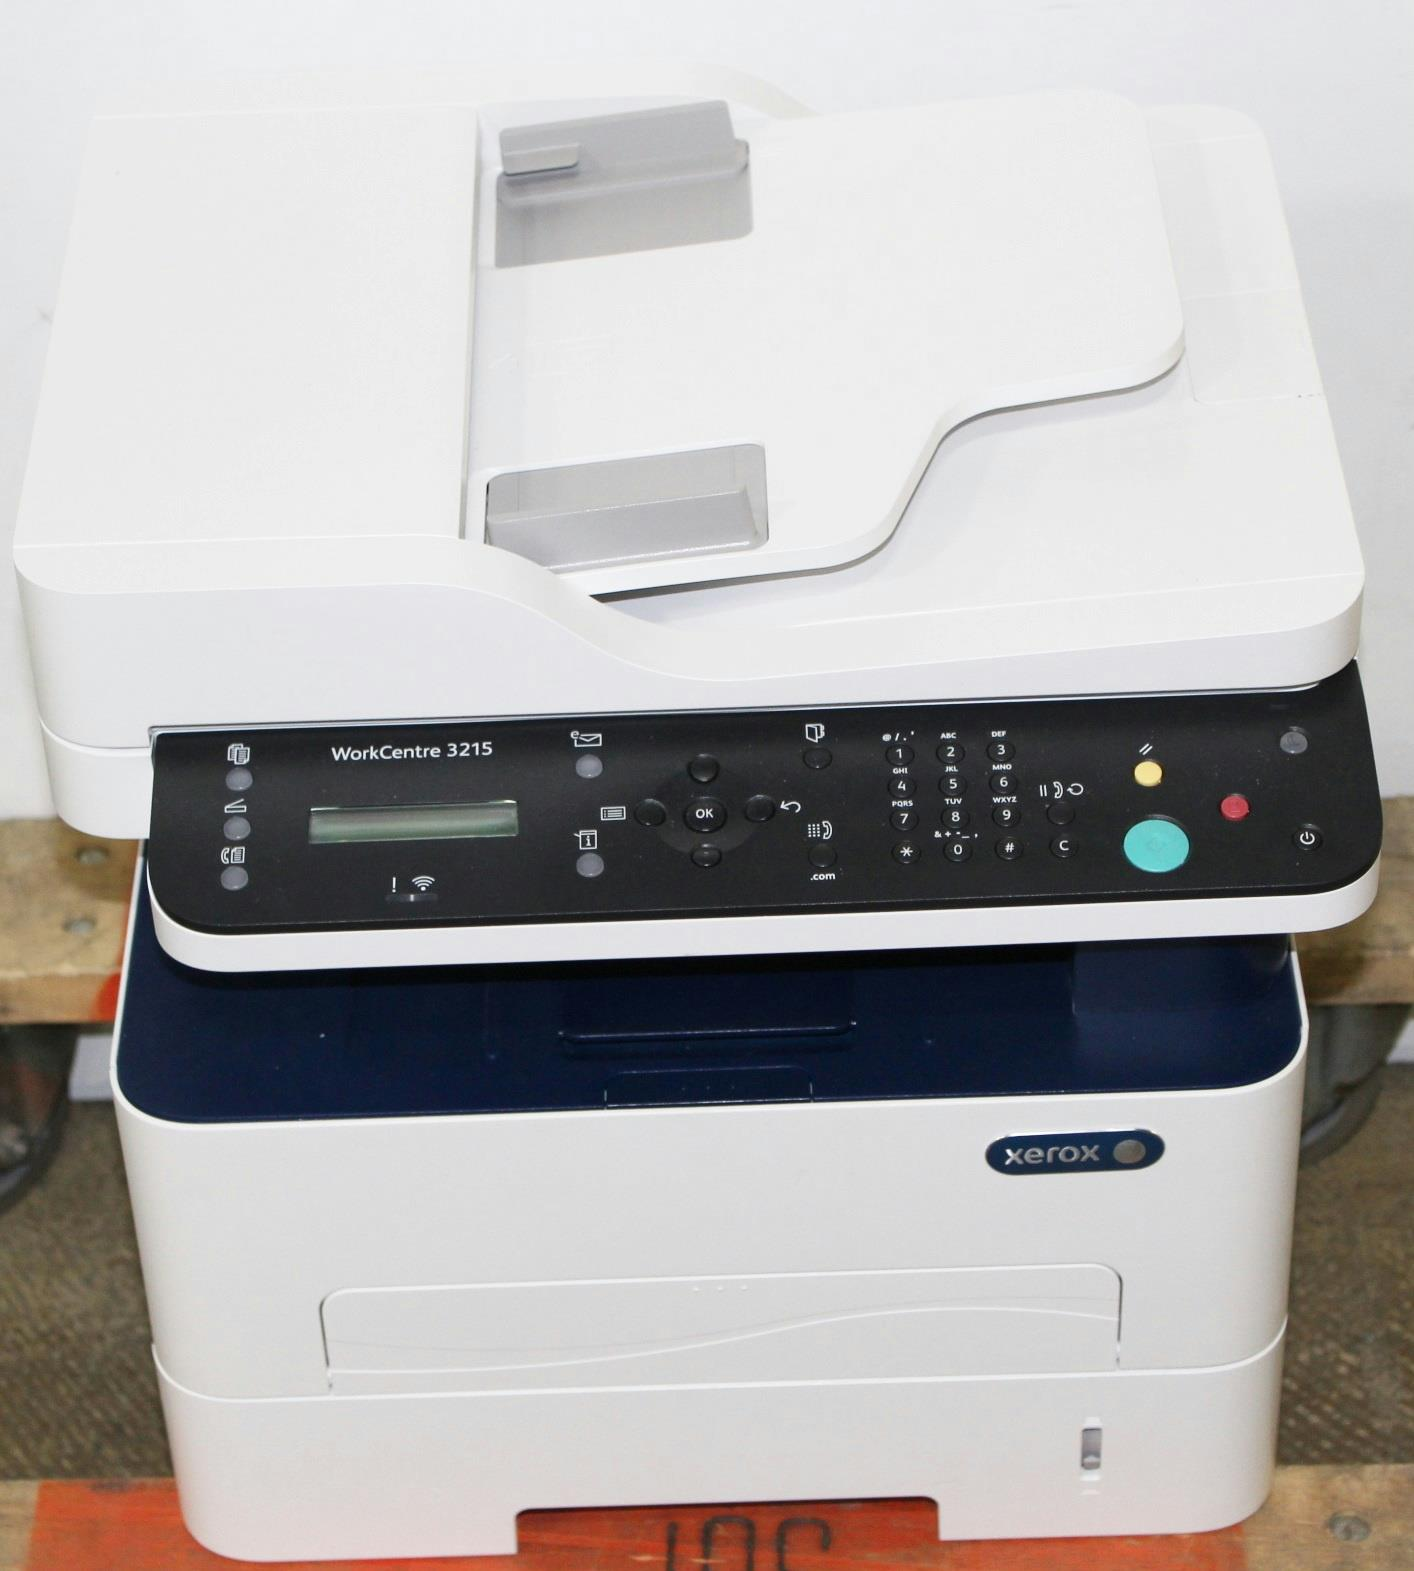 Details about Xerox WorkCentre Wireless b/w Multifunction Laser Printer,  3215/NI - 800144269